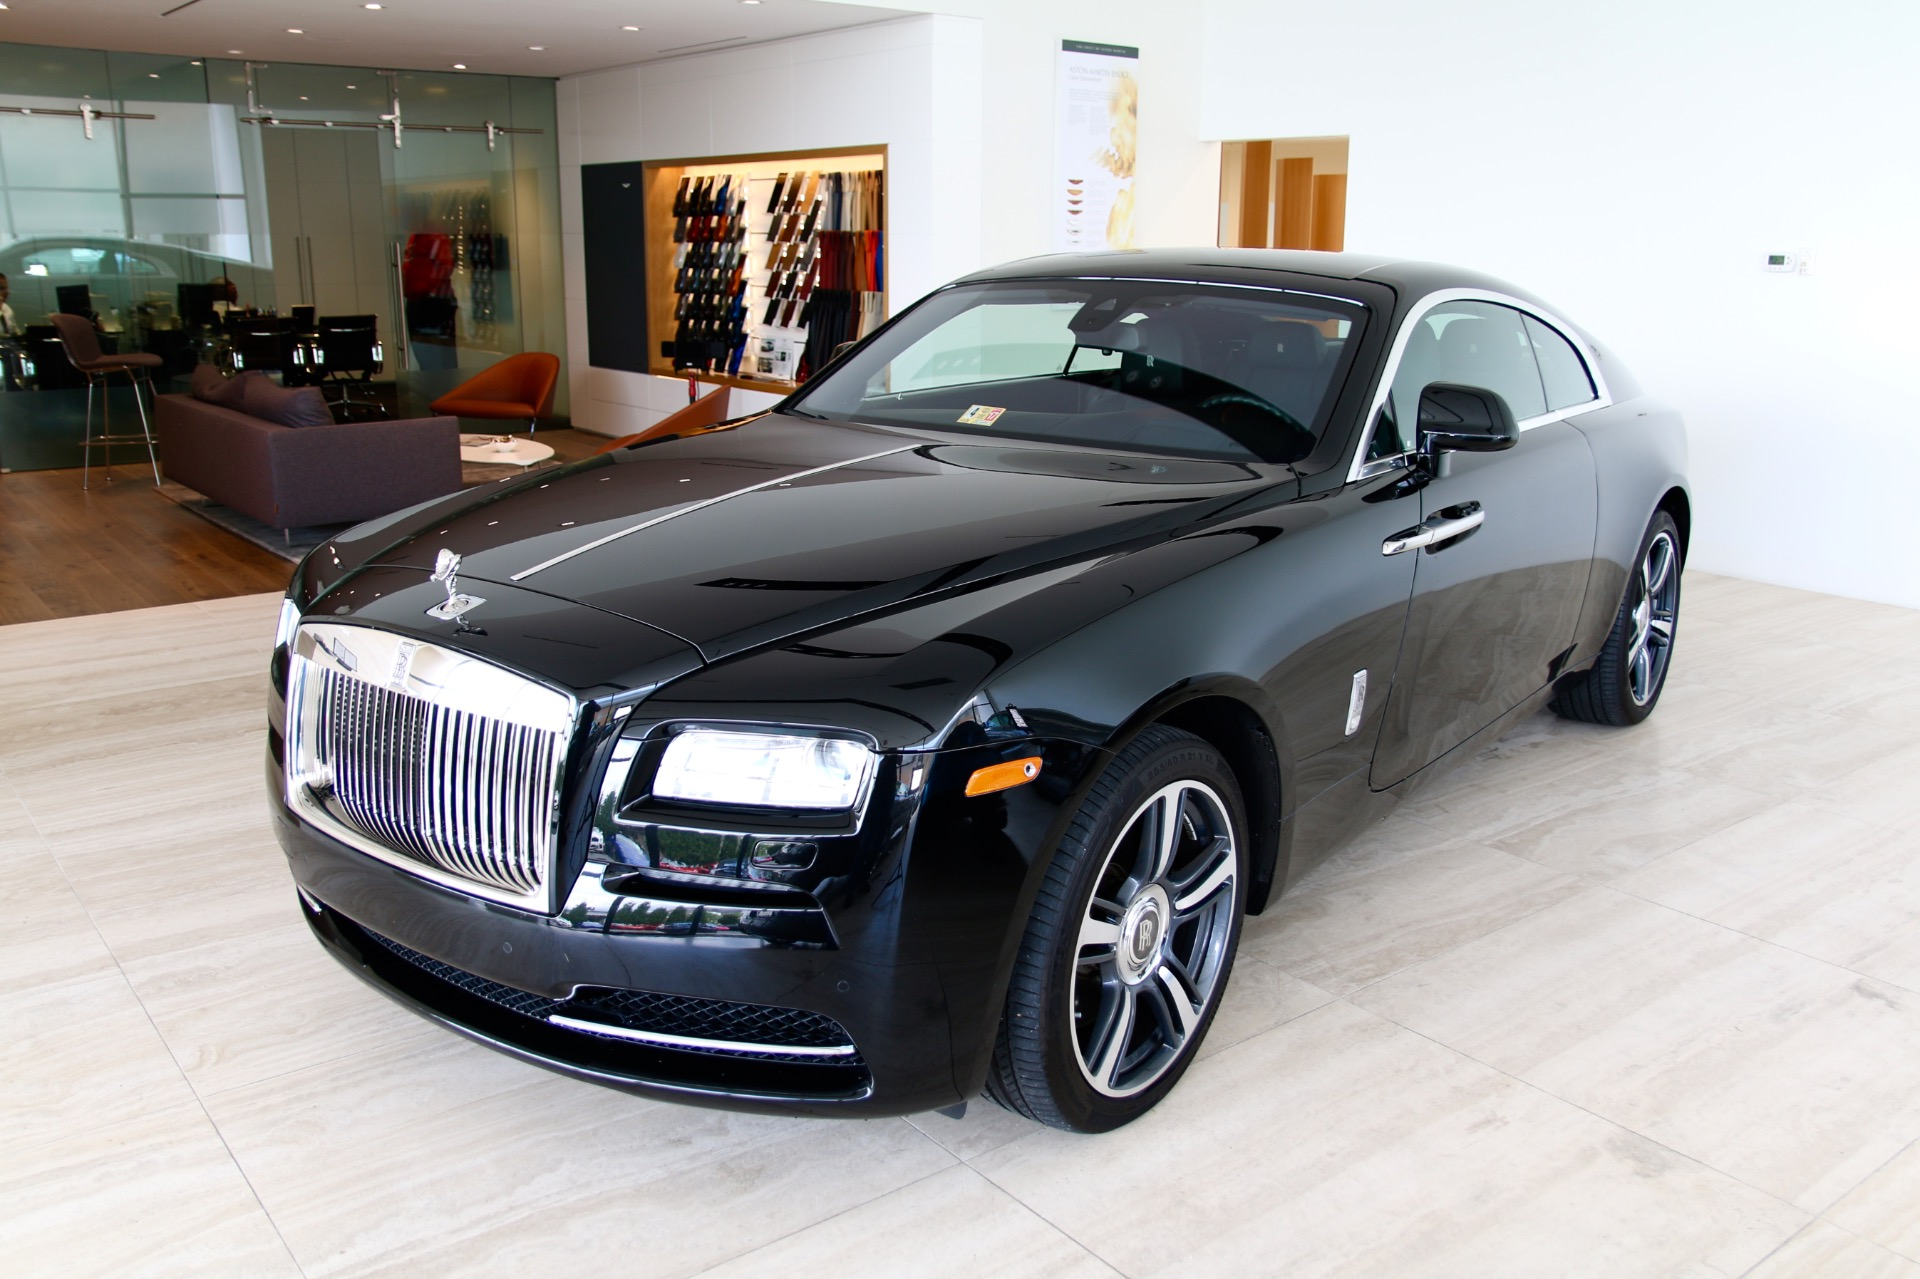 2014 rolls royce wraith stock px84416 for sale near. Black Bedroom Furniture Sets. Home Design Ideas